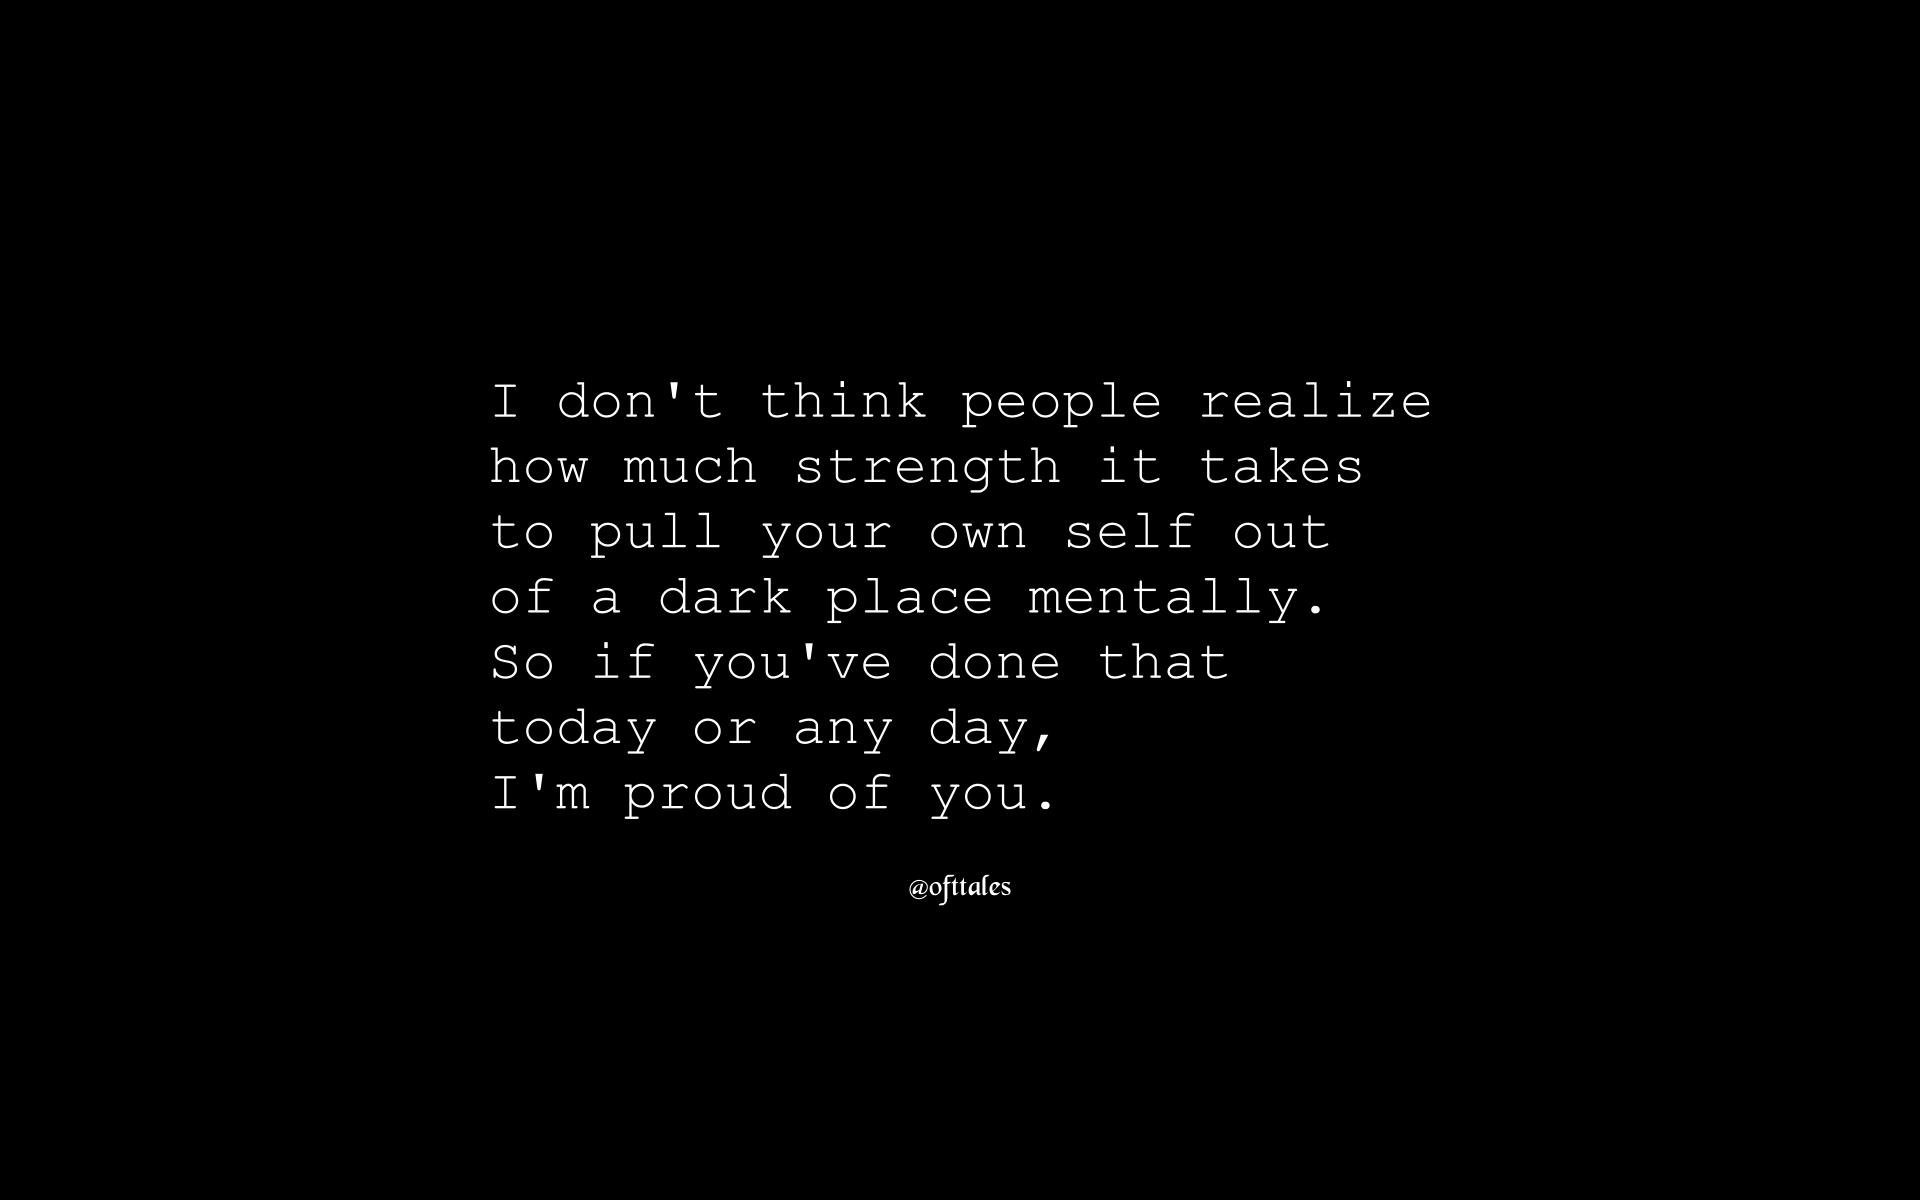 I don't think people realize how much strength it takes to pull your own self out of a dark place mentally. So if you've done that today or any day, I'm proud of you. @ofttafes https://inspirational.ly